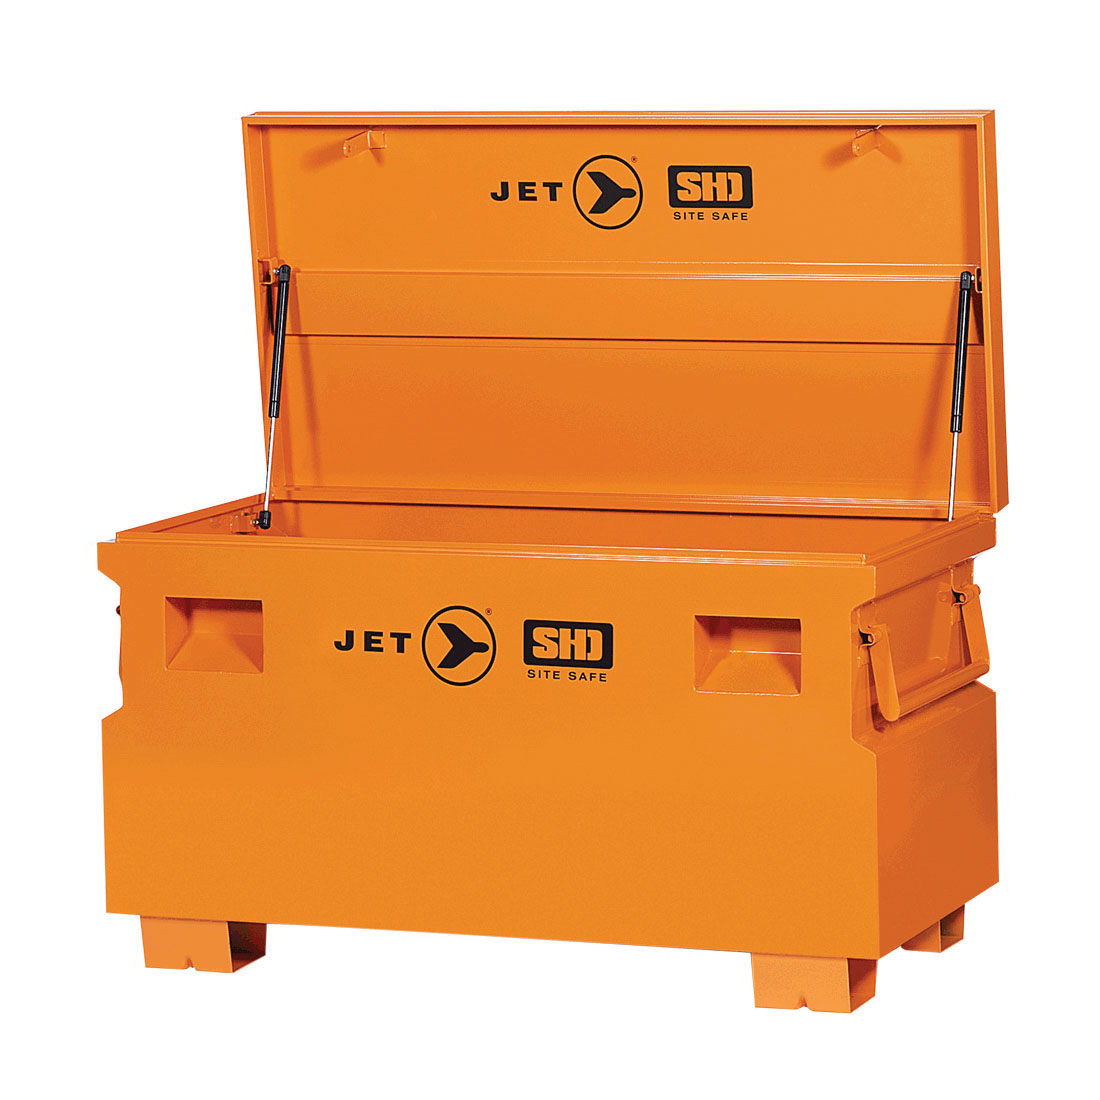 JET 842481 Super Heavy Duty Jobsite Tool Storage Box, 24-1/8 in x 48-1/8 in W x 24-1/8 in D, 16 cu-ft Storage, Steel